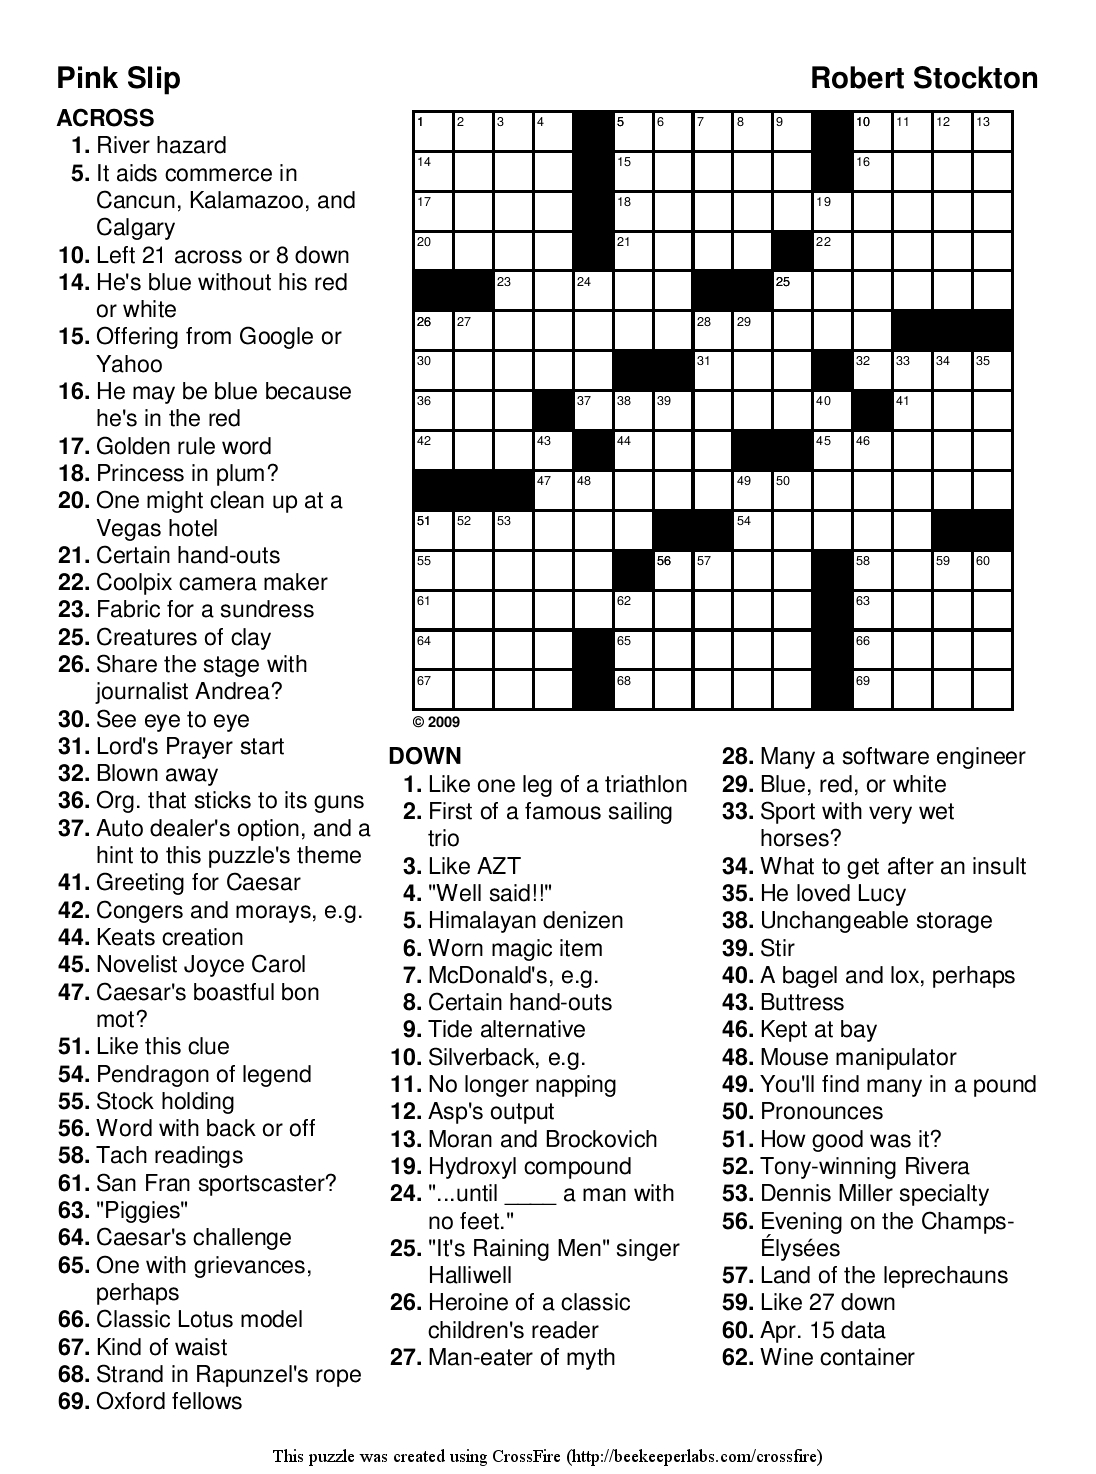 Printable Puzzles For Adults | Easy Word Puzzles Printable Festivals - Free Printable Crossword Puzzles Easy For Adults